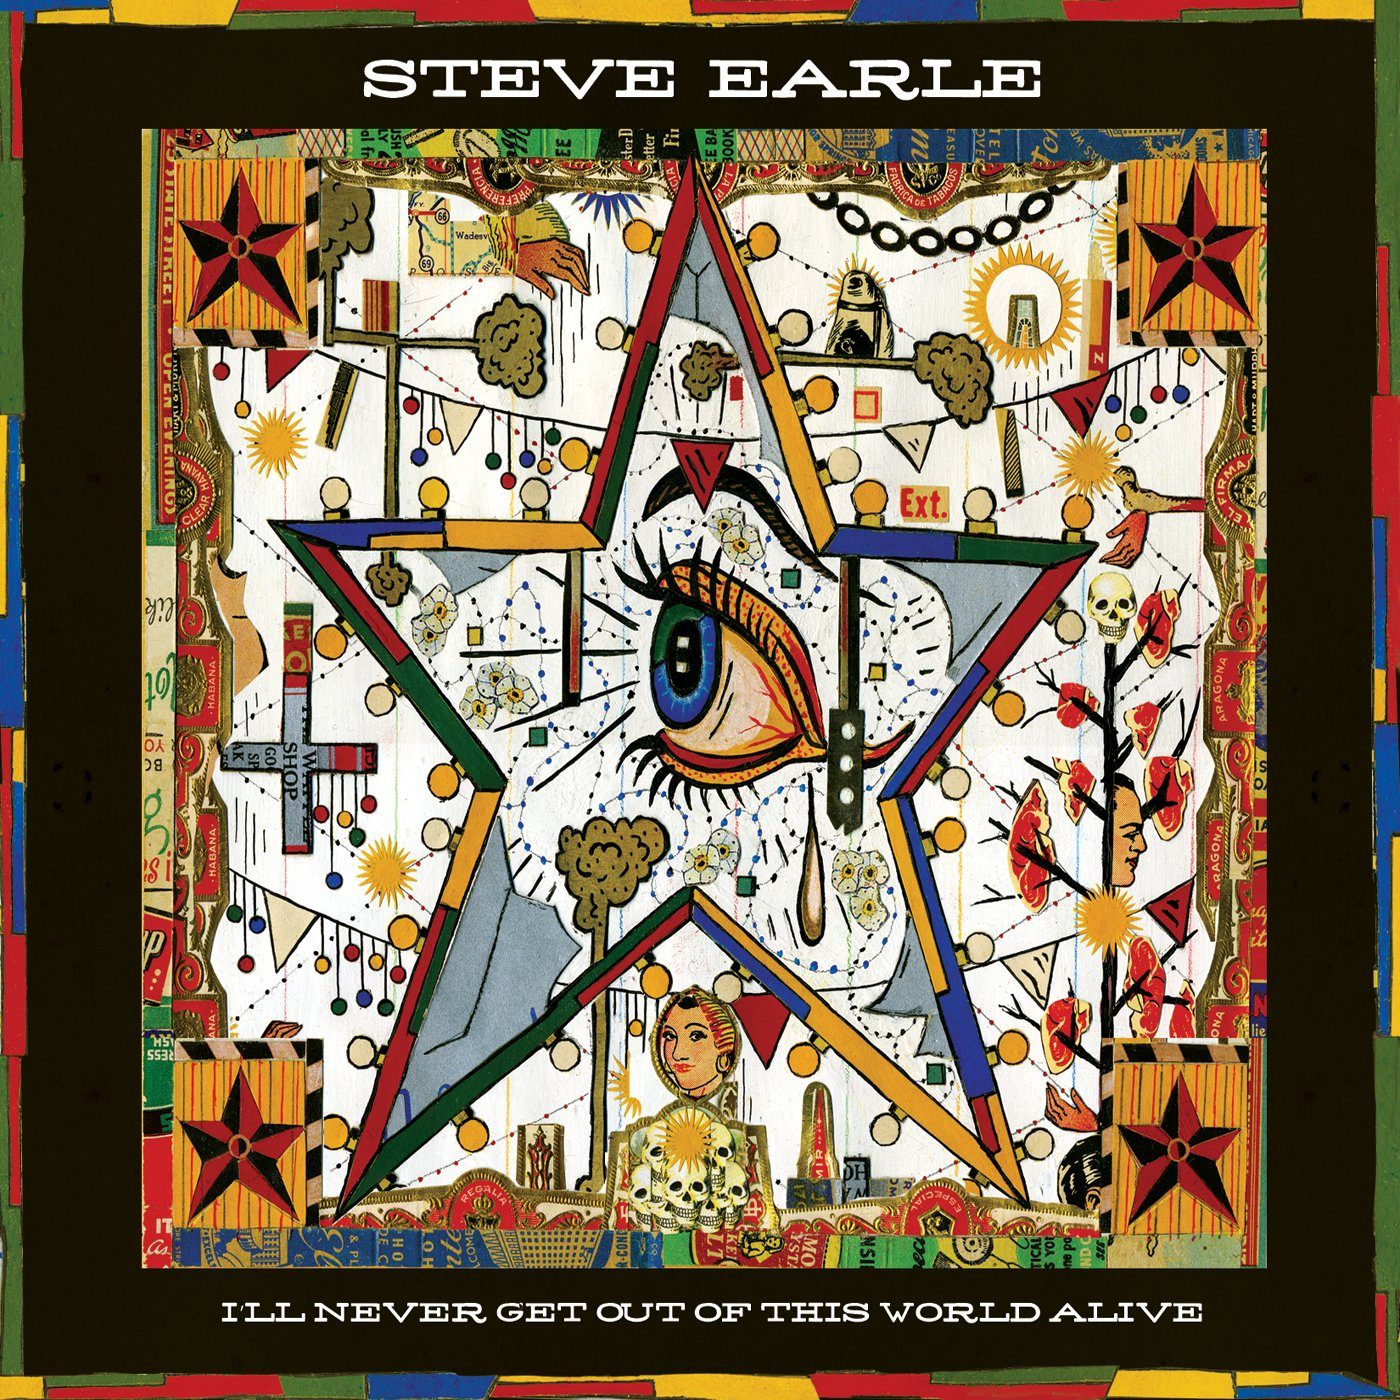 Steve Earle, I'll Never Get Out of This World Alive